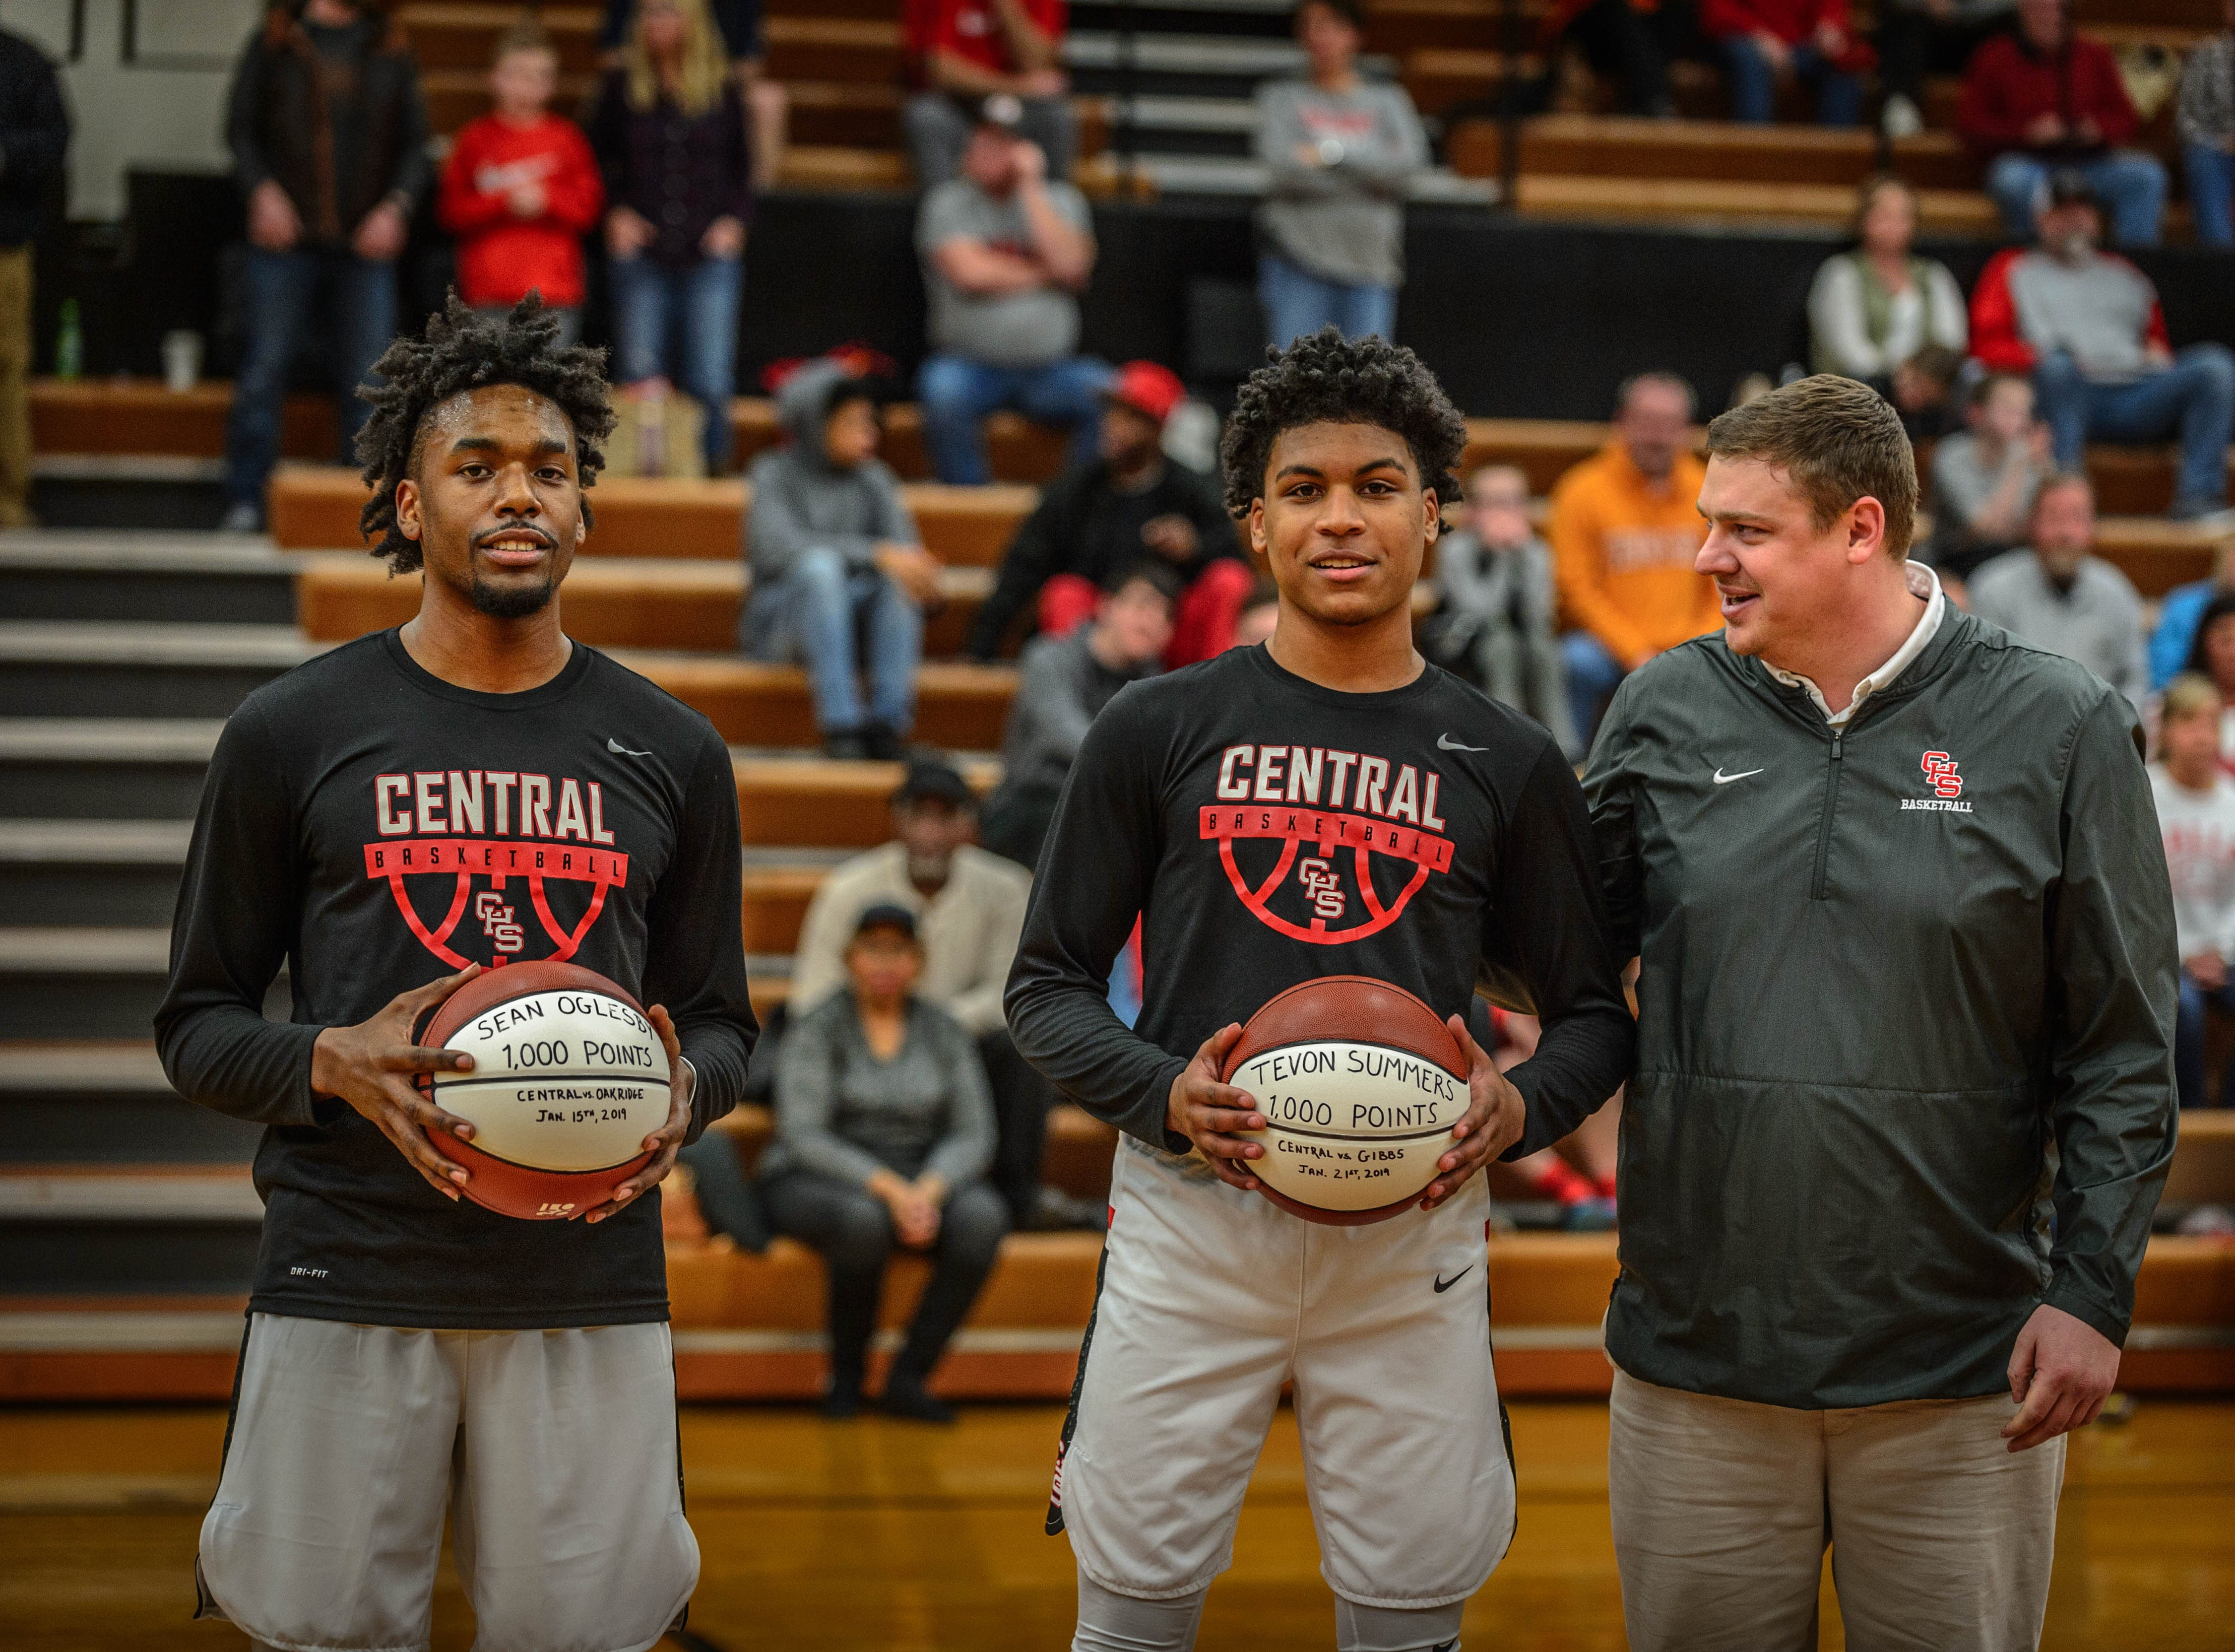 Sean Oglesby, left, had racked up 1,000 points by the Jan. 15 game vs. Oak Ridge, and Tevon Summers, right, had 1,000 points to his name by the Central vs. Gibbs game Jan. 21. Both players were recognized before the Feb. 1 game by their coach, Andy Hill.